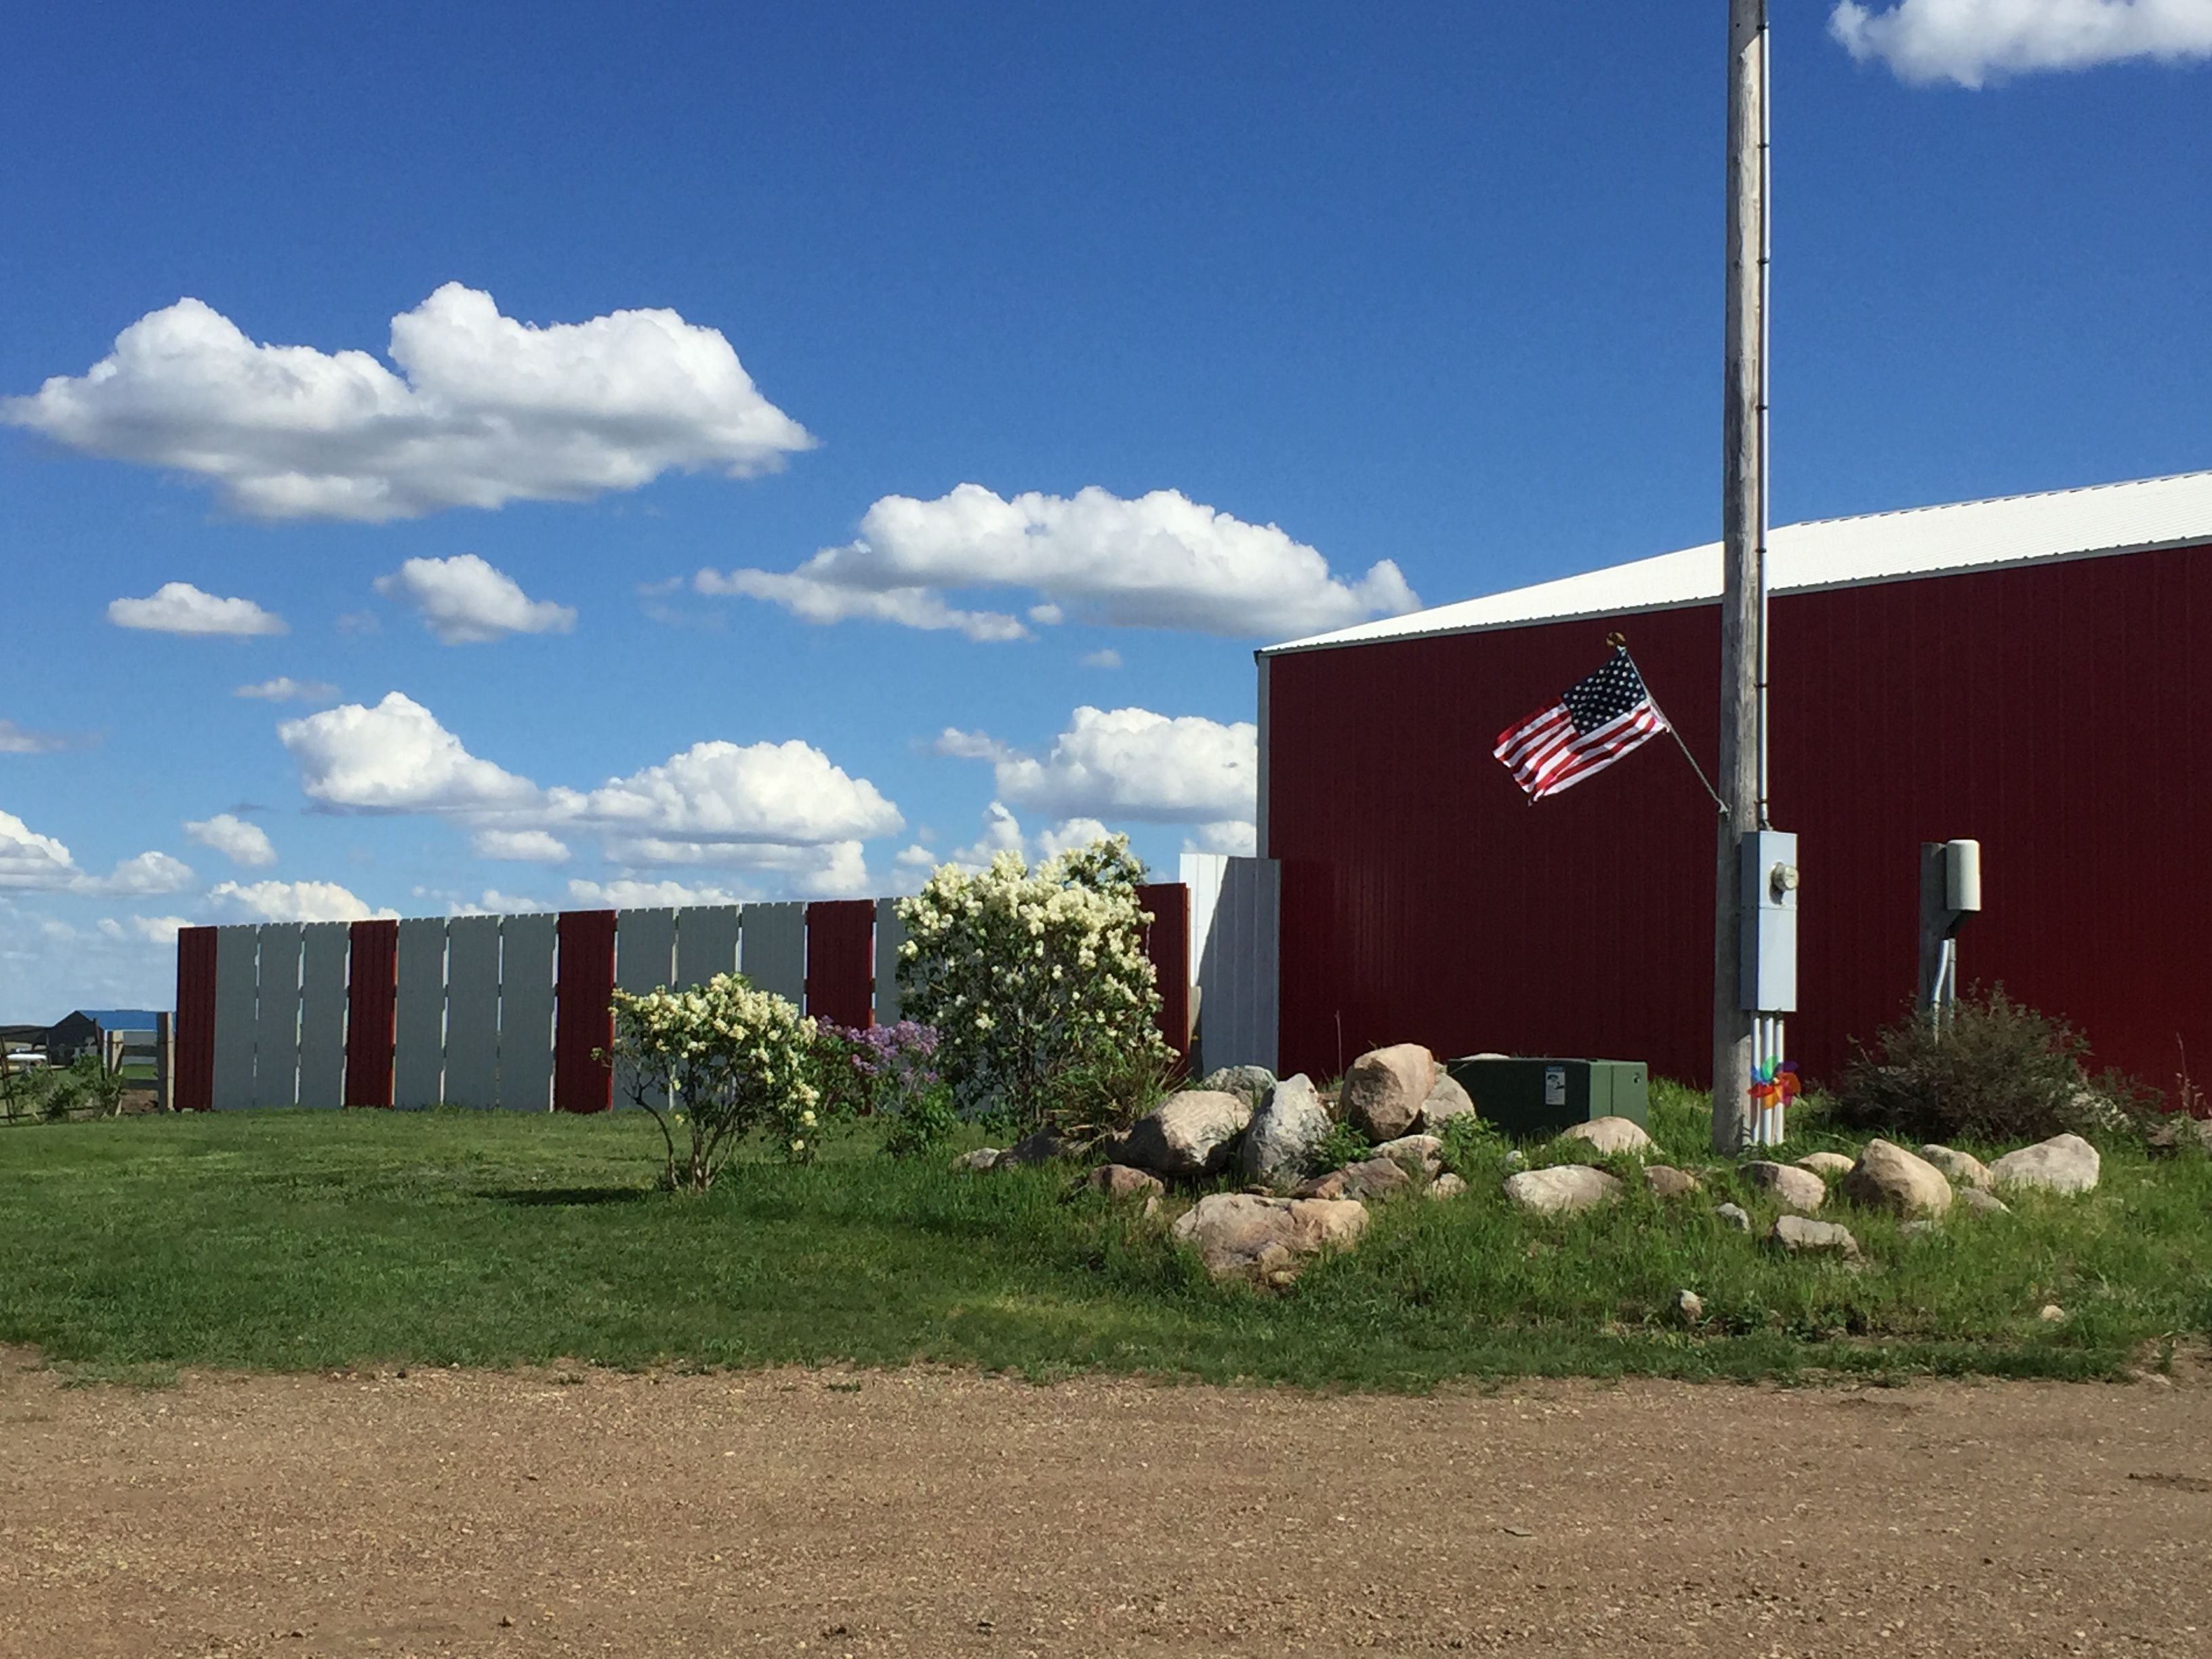 N D Prairie property with updates.  Please come take a look.  Seller would like to move to be with family. image 1